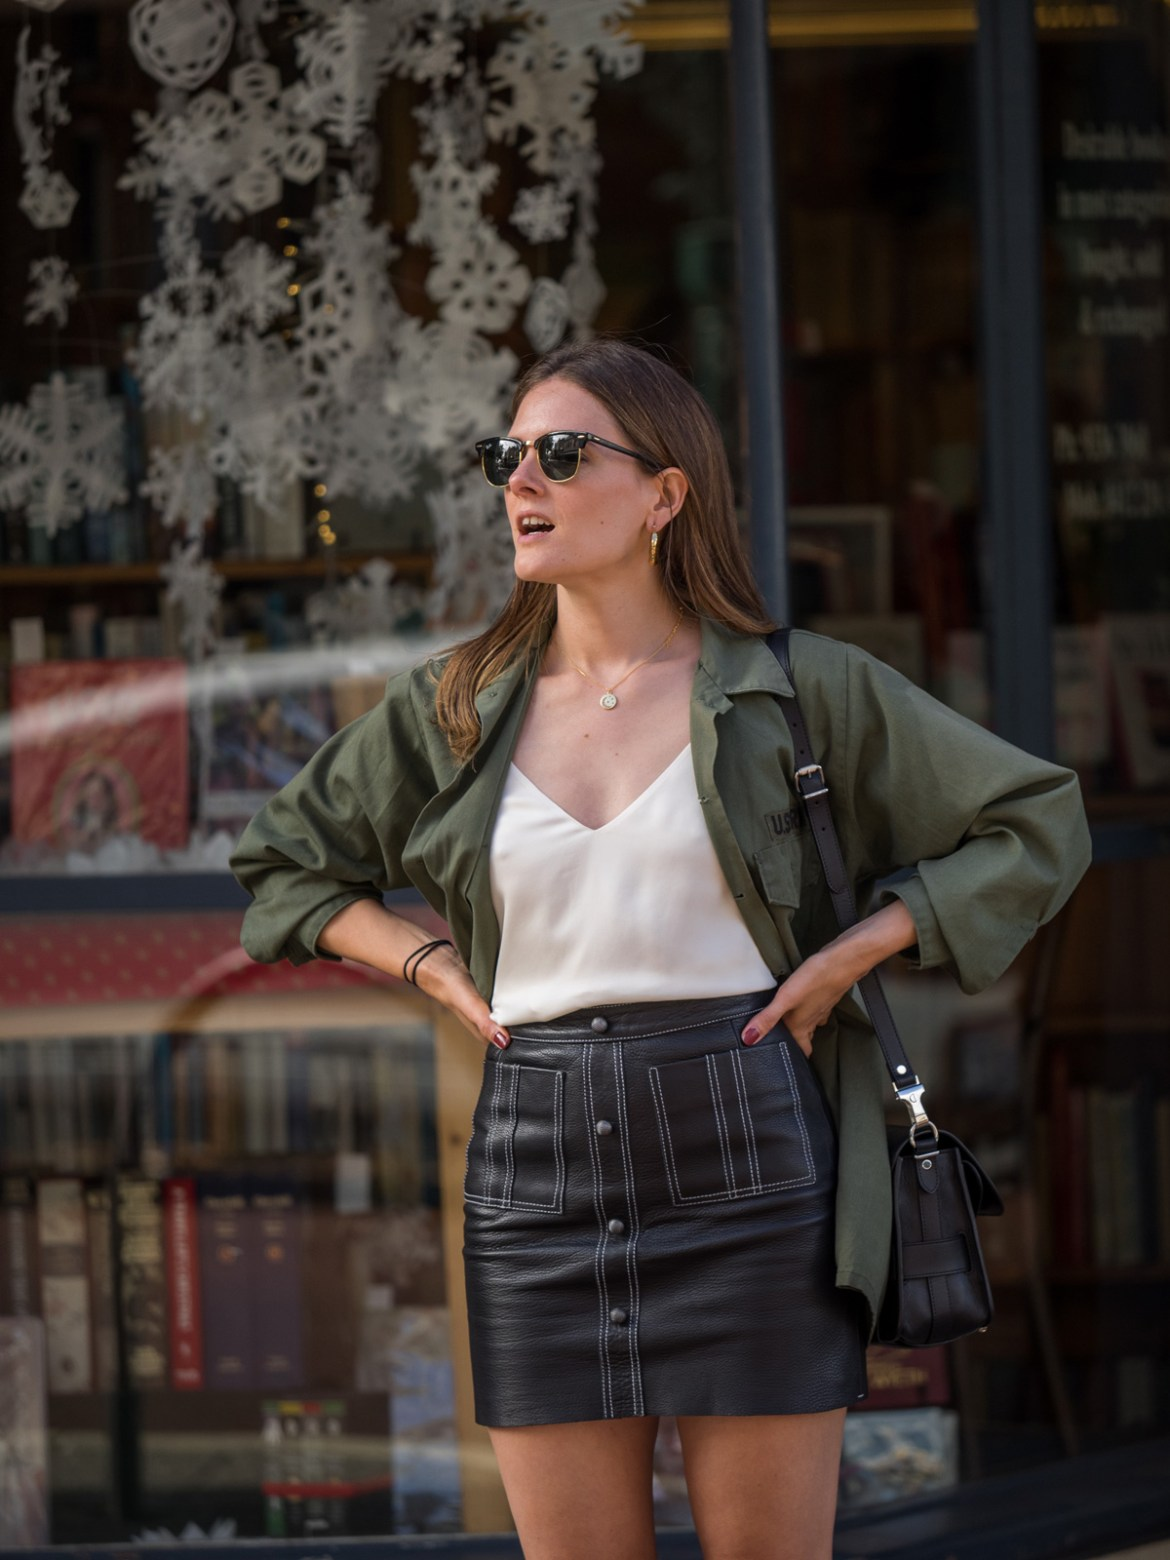 Aje leather mini skirt with army jacket worn by Jenelle Witty of Inspiring Wit fashion and travel blog